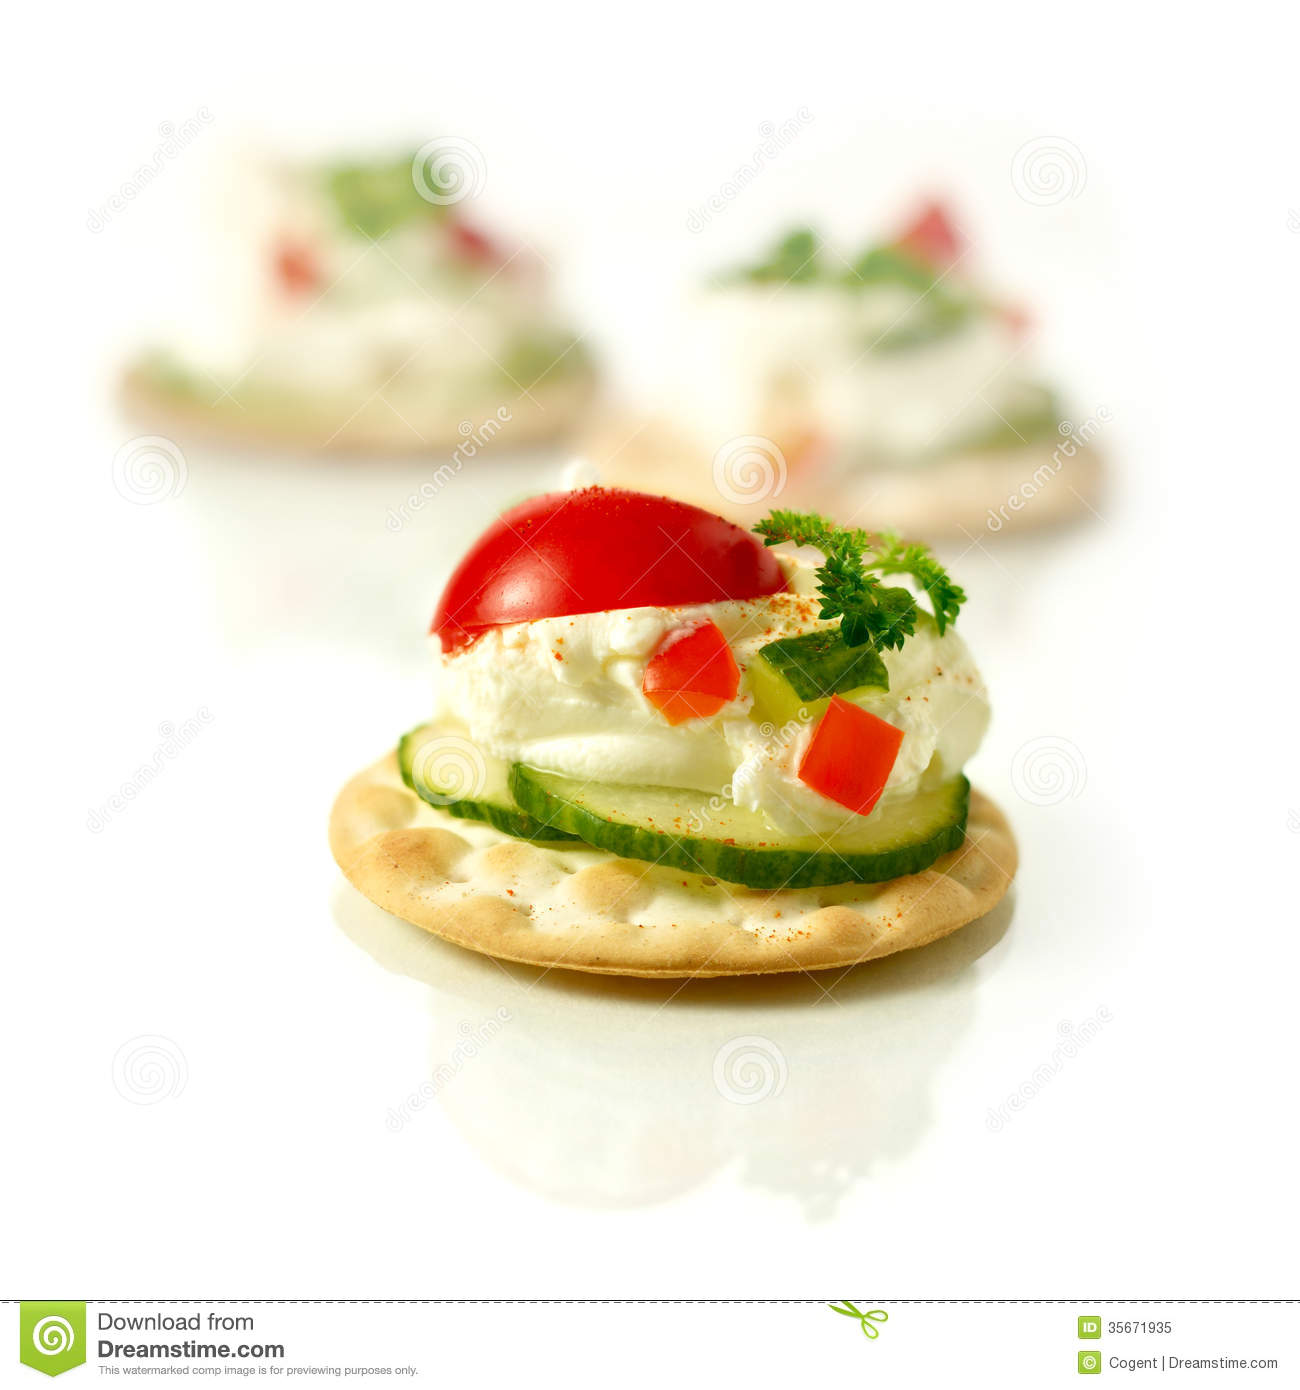 Canapes royalty free stock photo image 35671935 for Canape garnishes